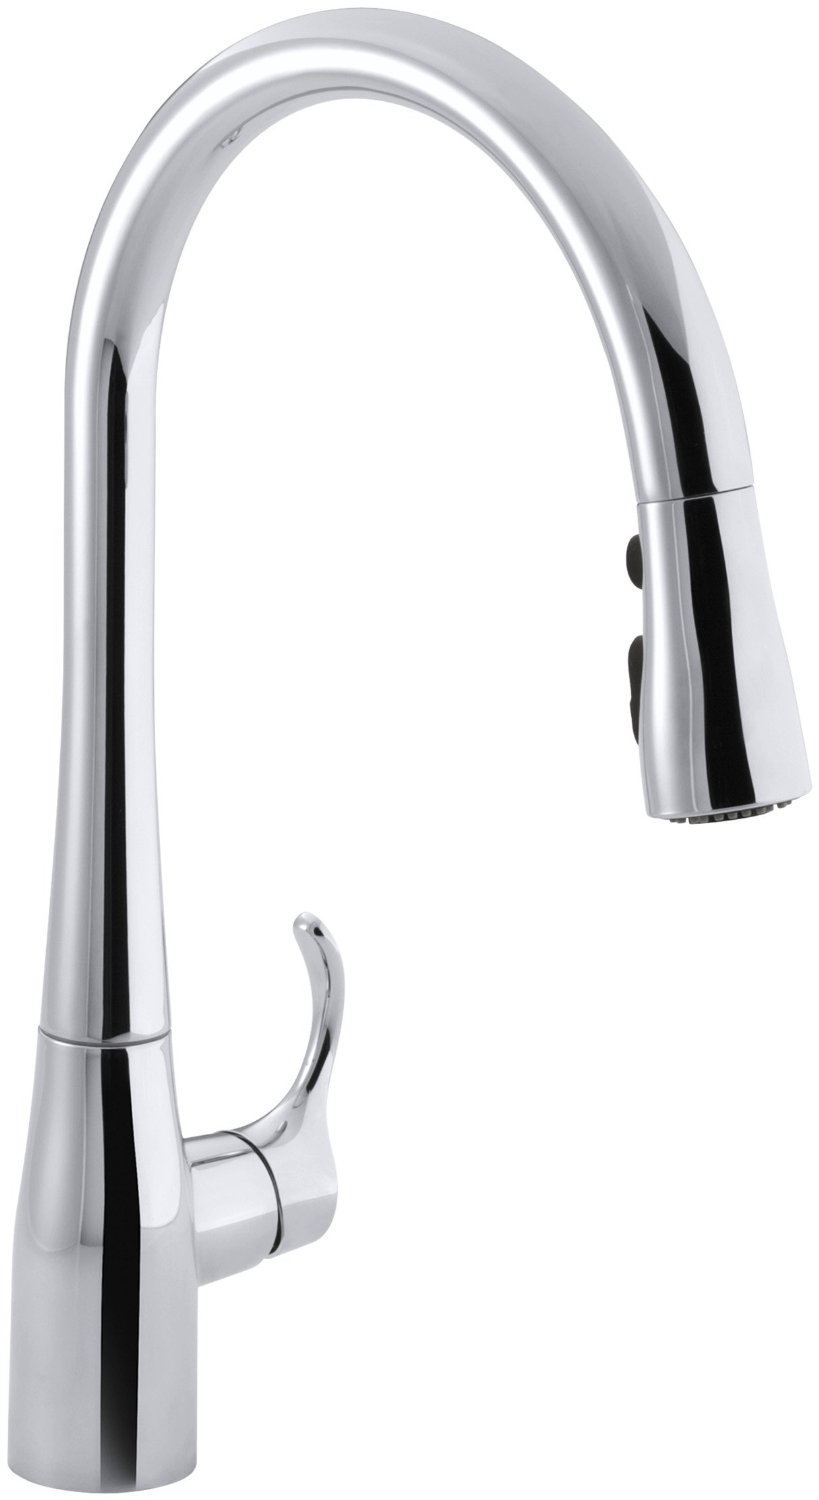 Whats the Best Pull Down Kitchen Faucet  Kitchen